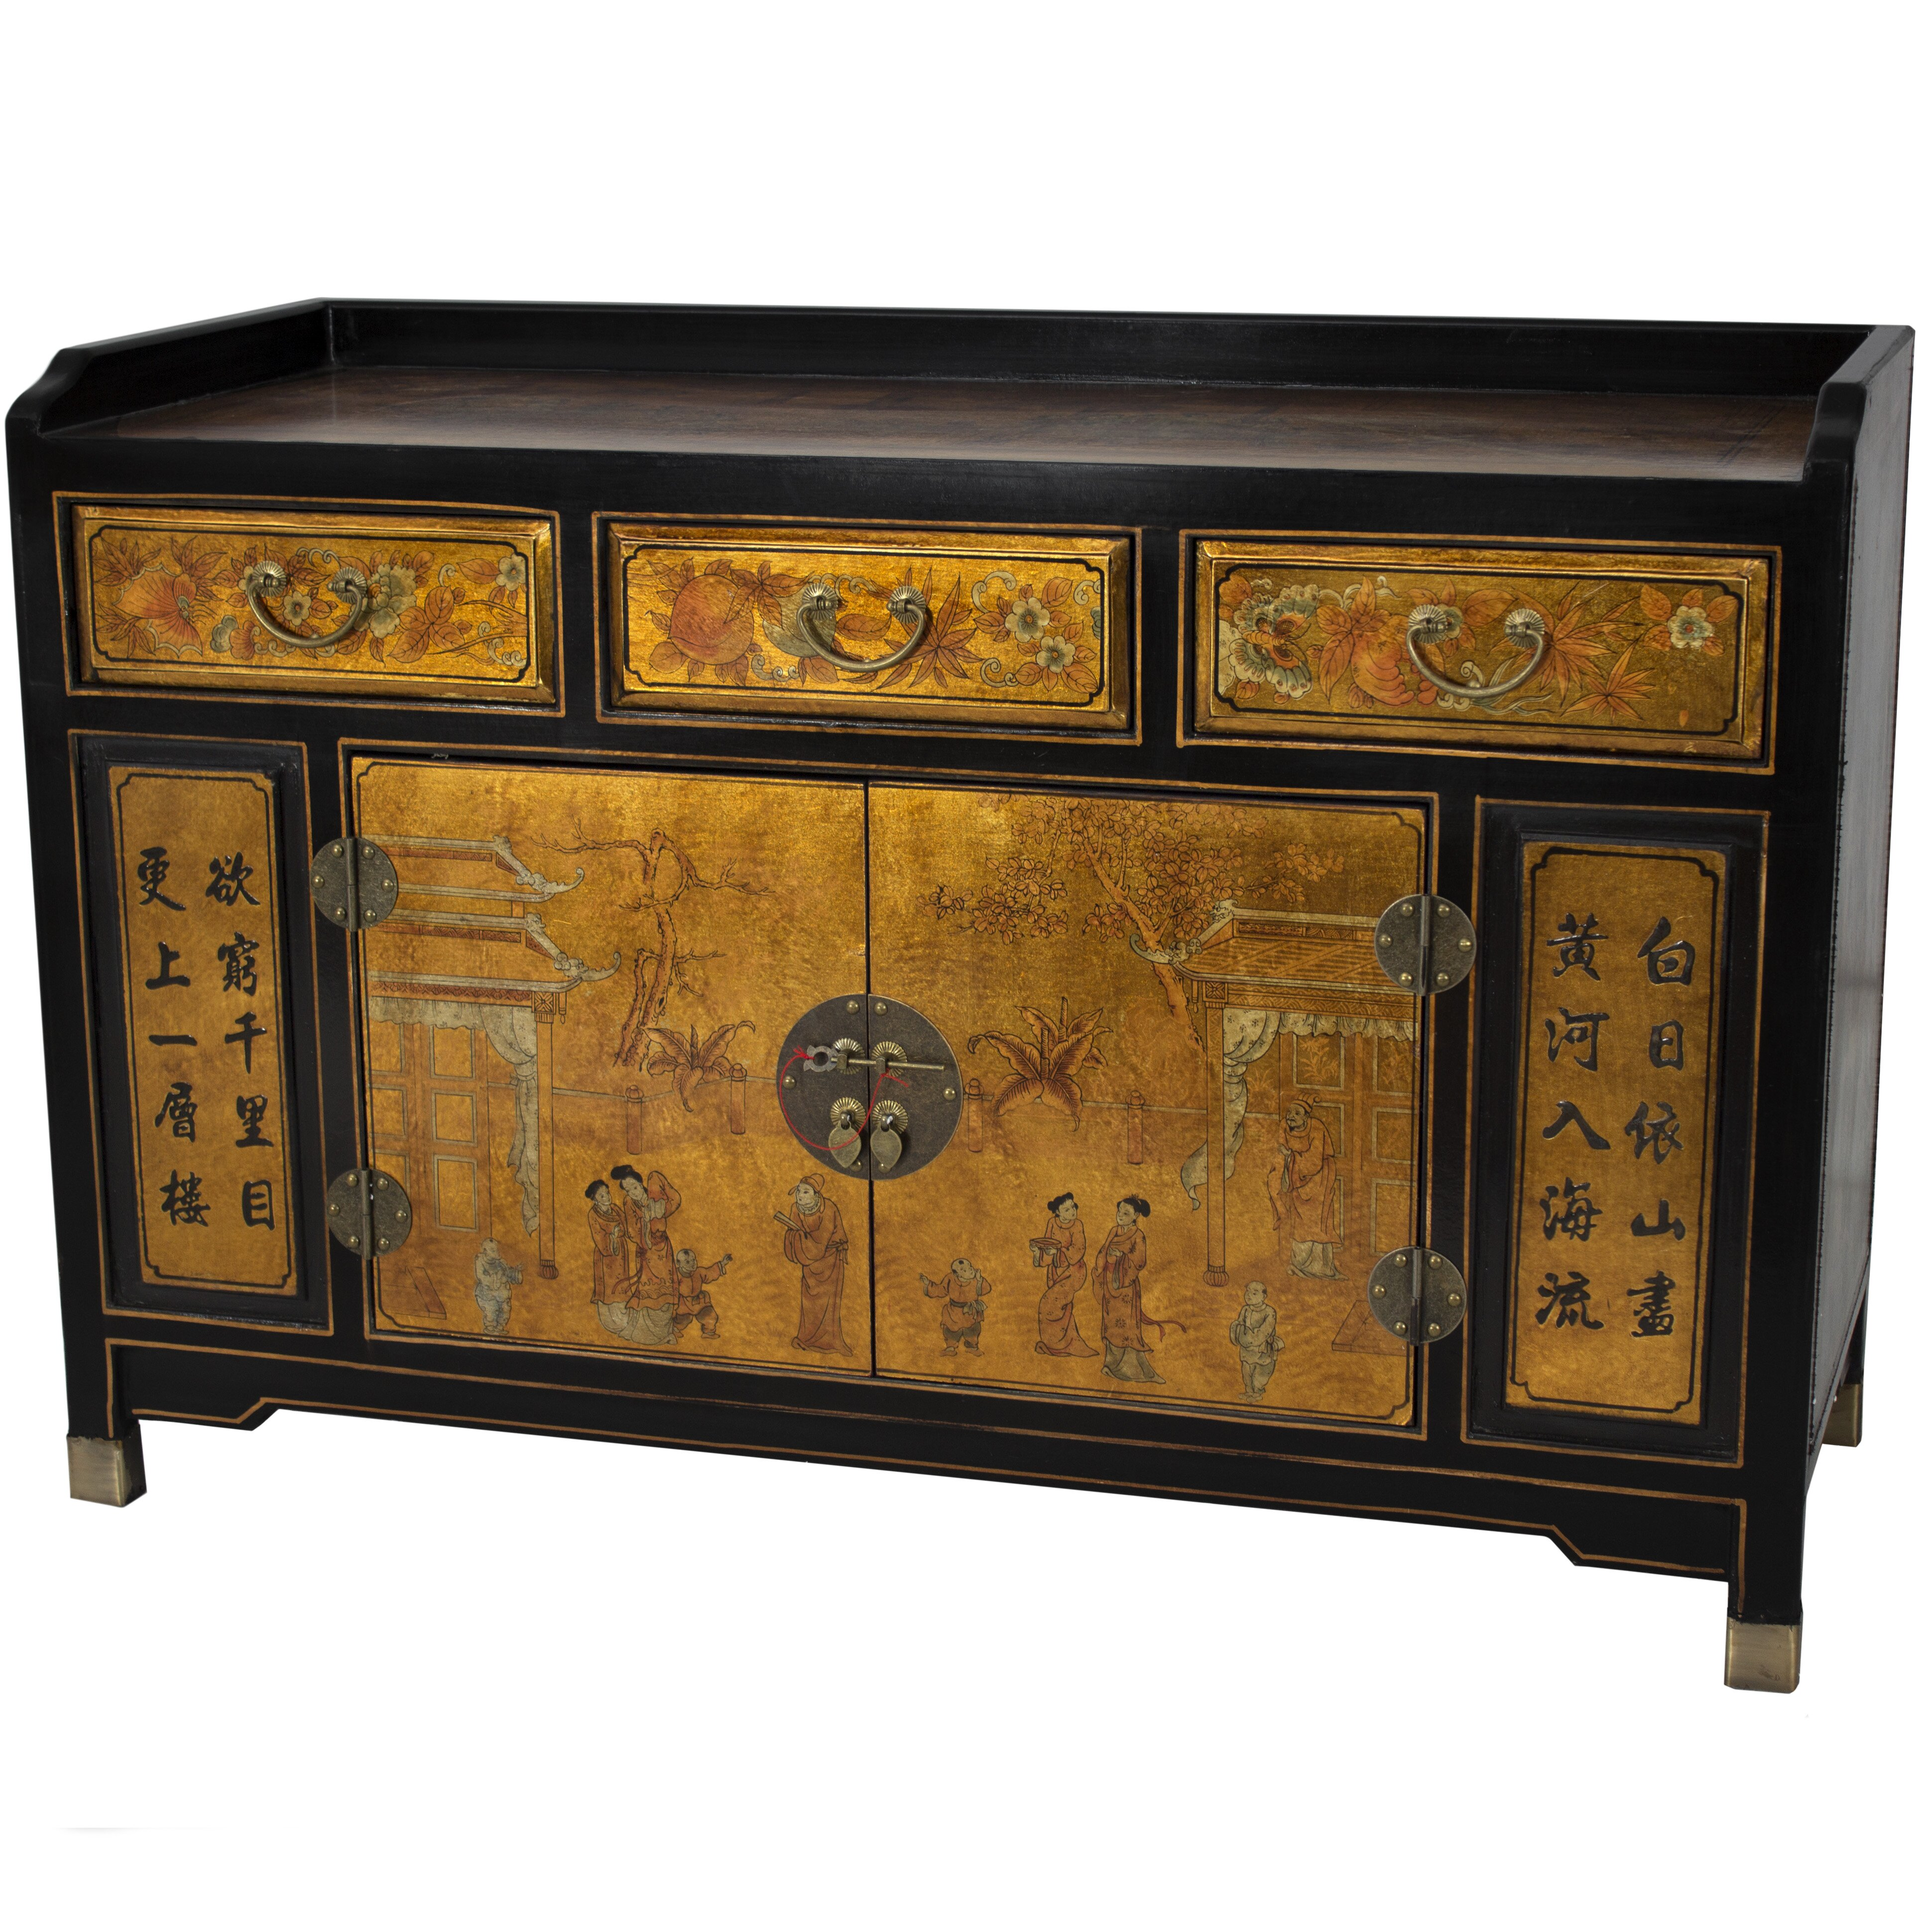 Oriental furniture village life buffet reviews for Asian furniture emeryville ca